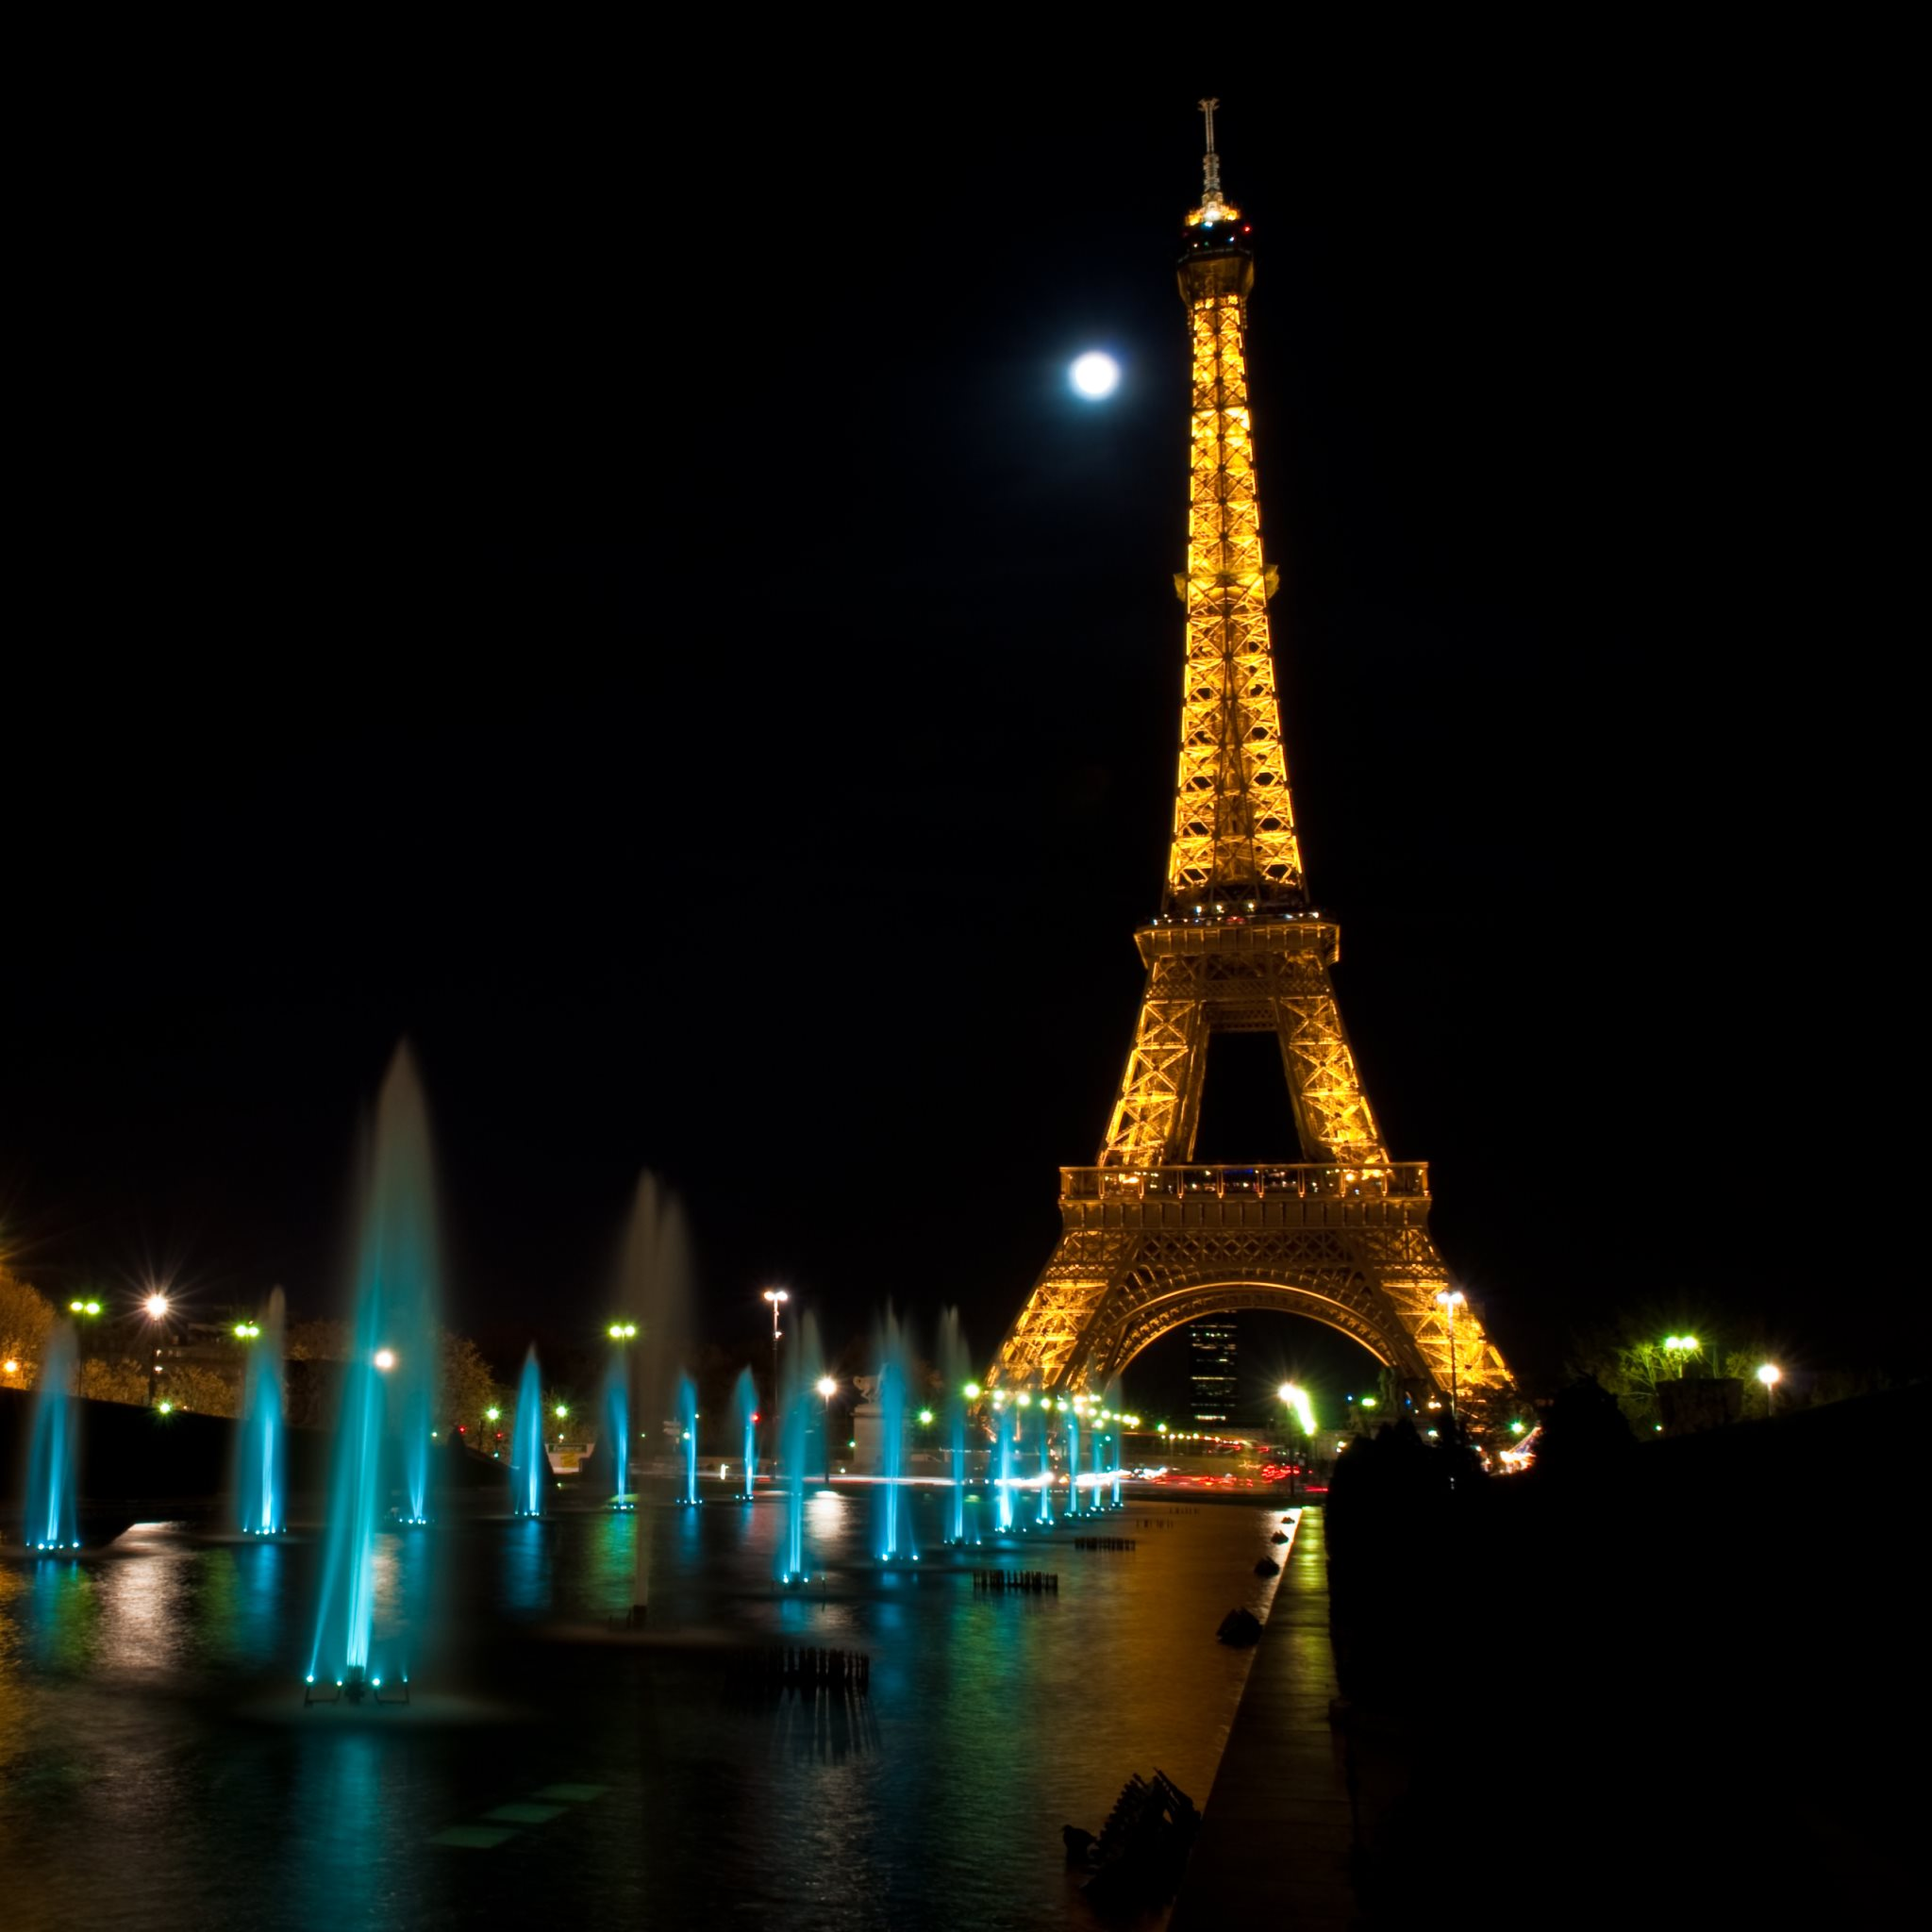 Paris at Night. Tour Eiffel HD wallpapers | 4K MacBook and ...